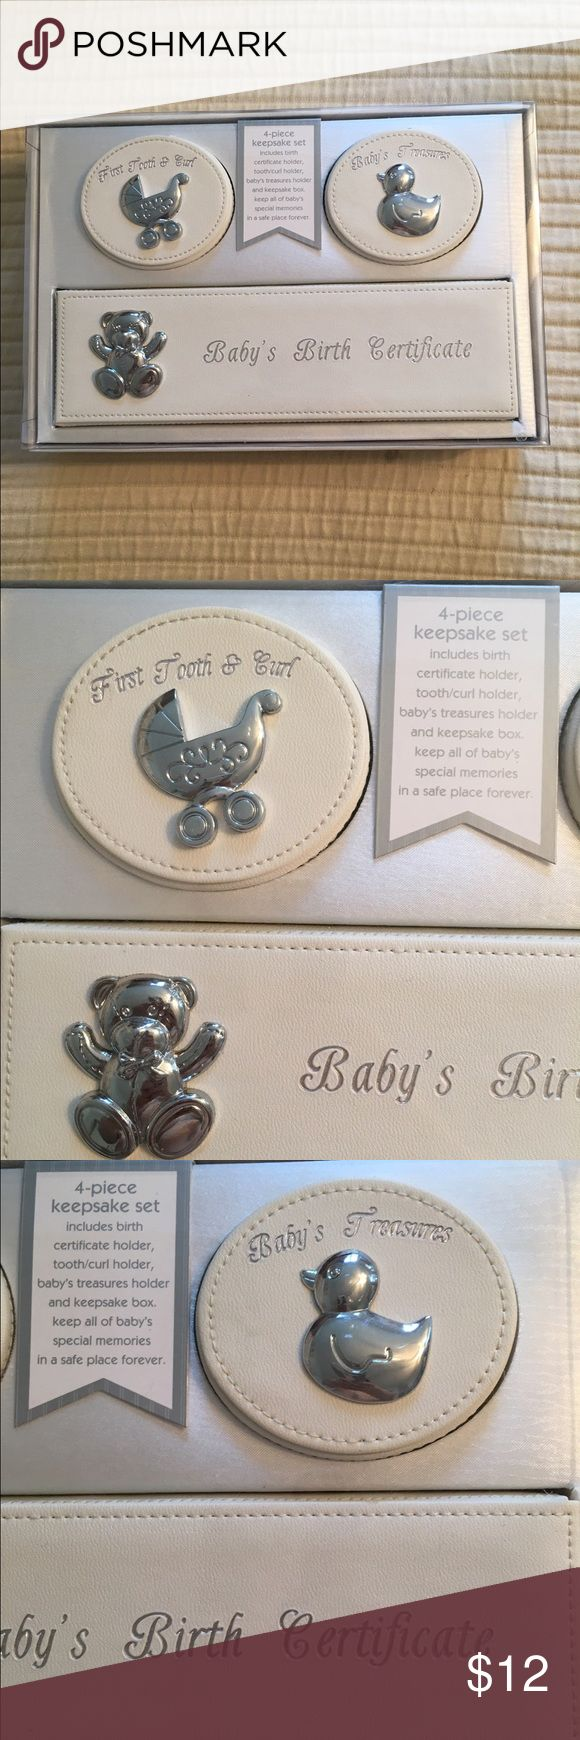 The 25 best new birth certificate ideas on pinterest first impressions baby gift set aiddatafo Image collections